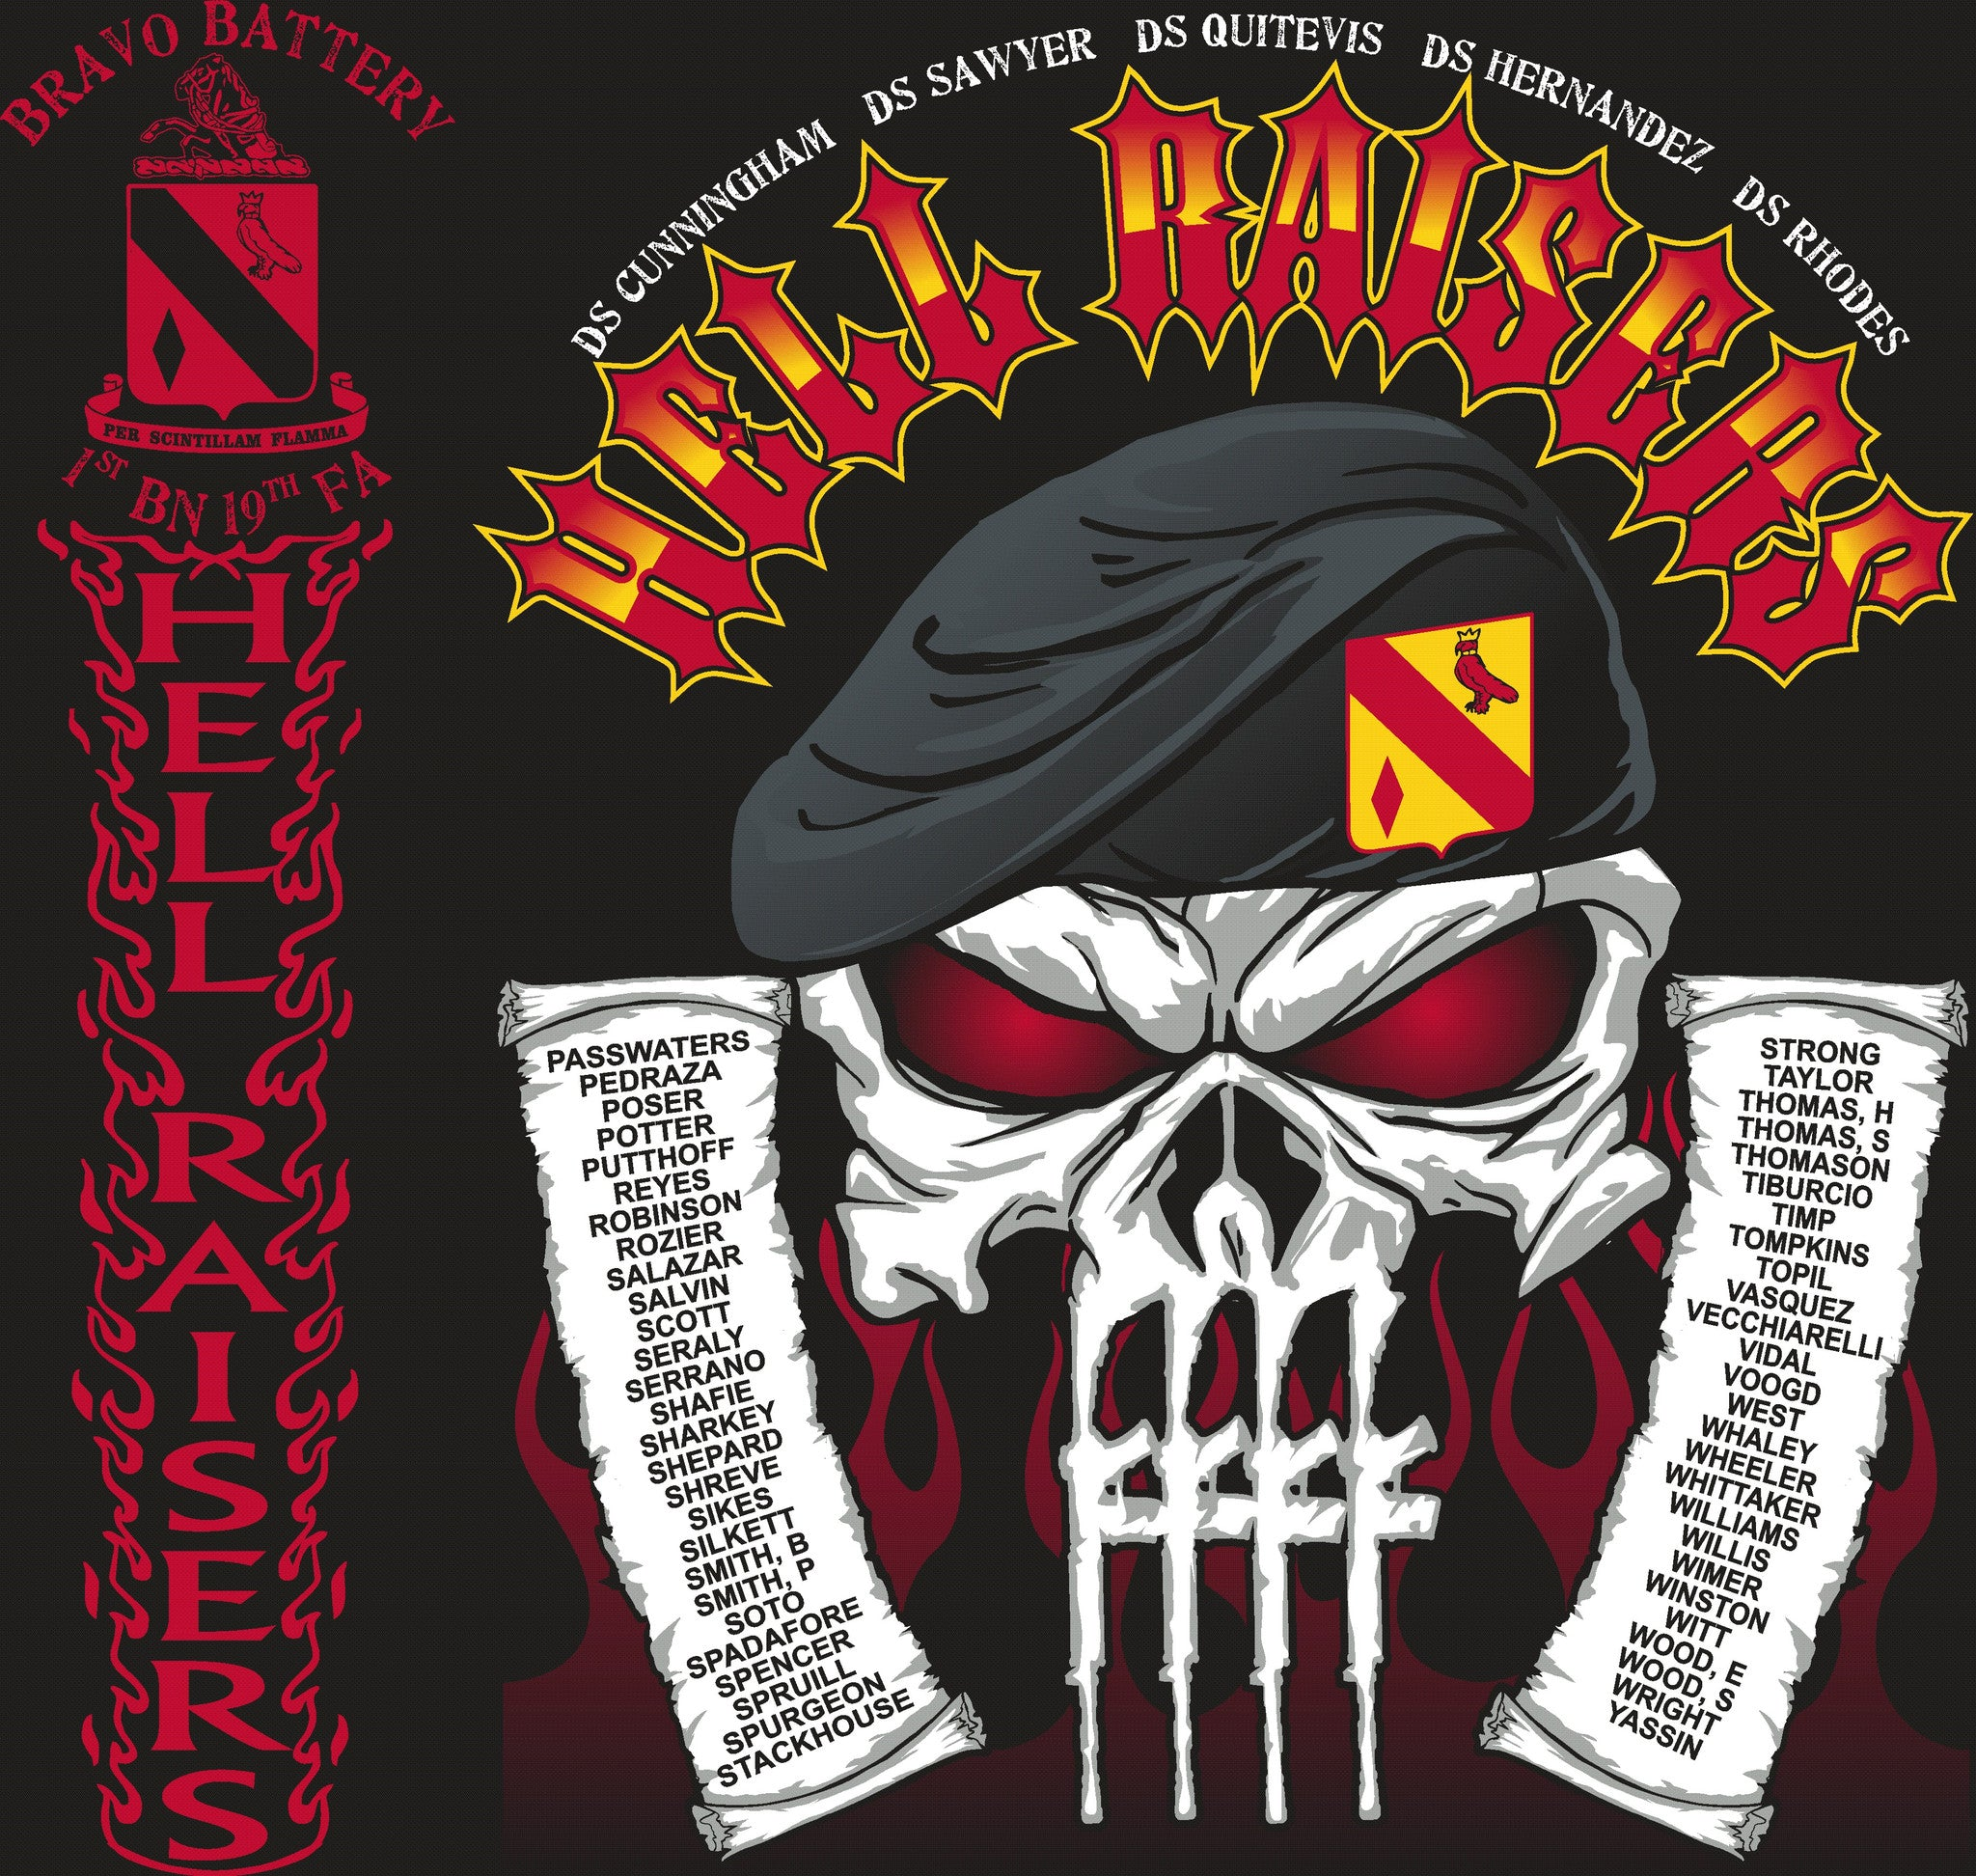 Platoon Shirts (digital) BRAVO 1st 19th HELLRAISERS JULY 2015